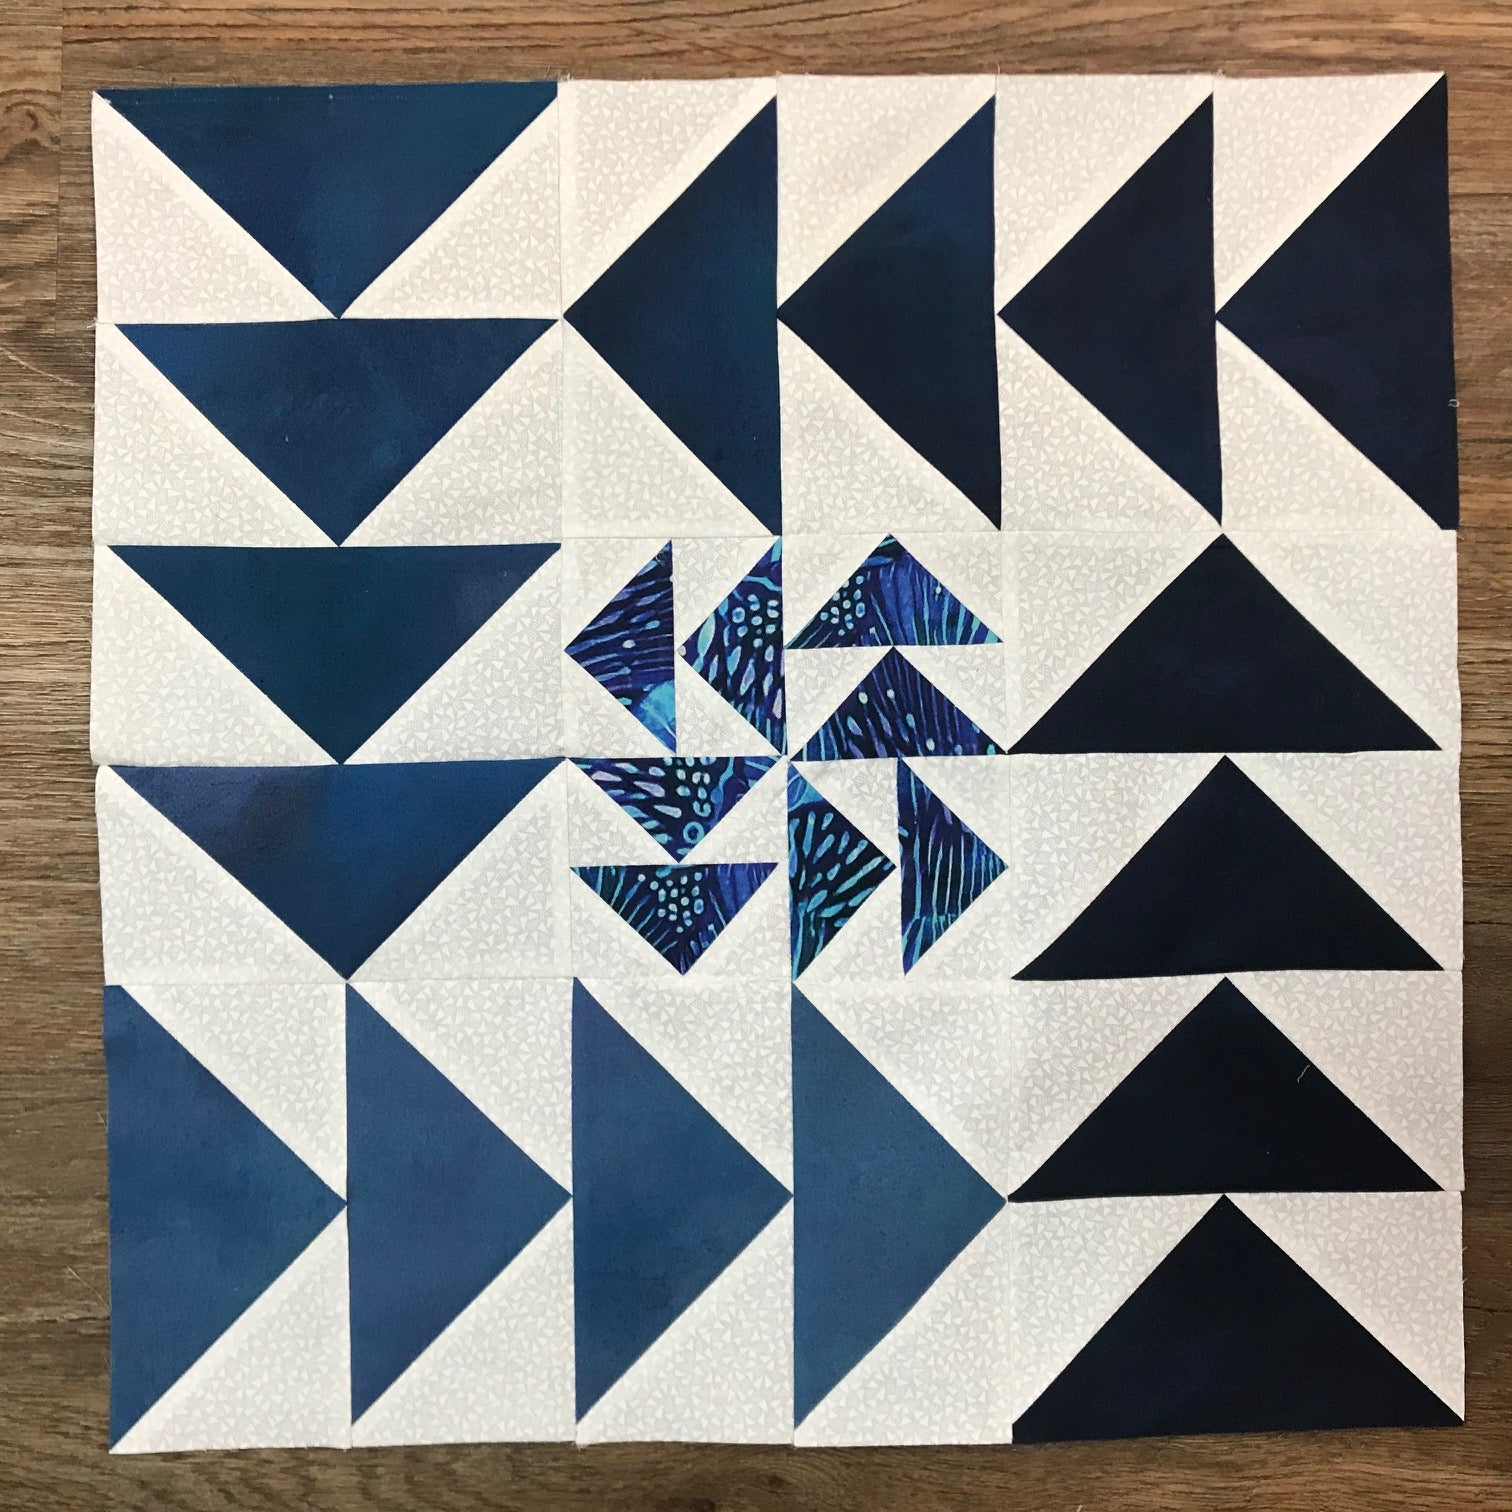 2020 Quilters Trek A Study in Blue: Ombre' Effects Kit